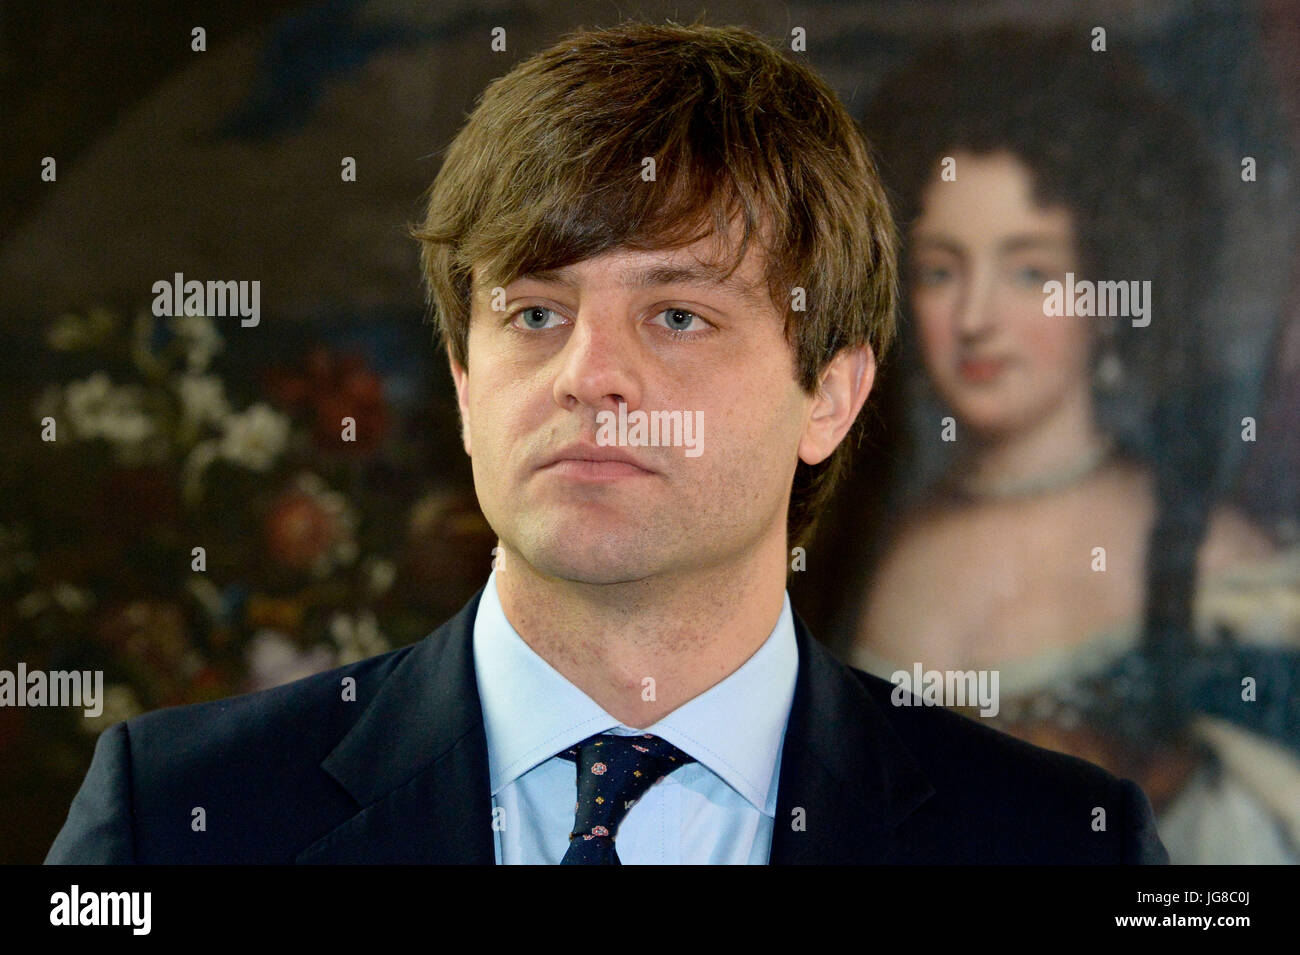 FILE - Prince Ernst August of Hanover, photographed at Marienburg Castle near Pattensen, Germany, 11 April 2014. Photo: Peter Steffen/dpa Stock Photo